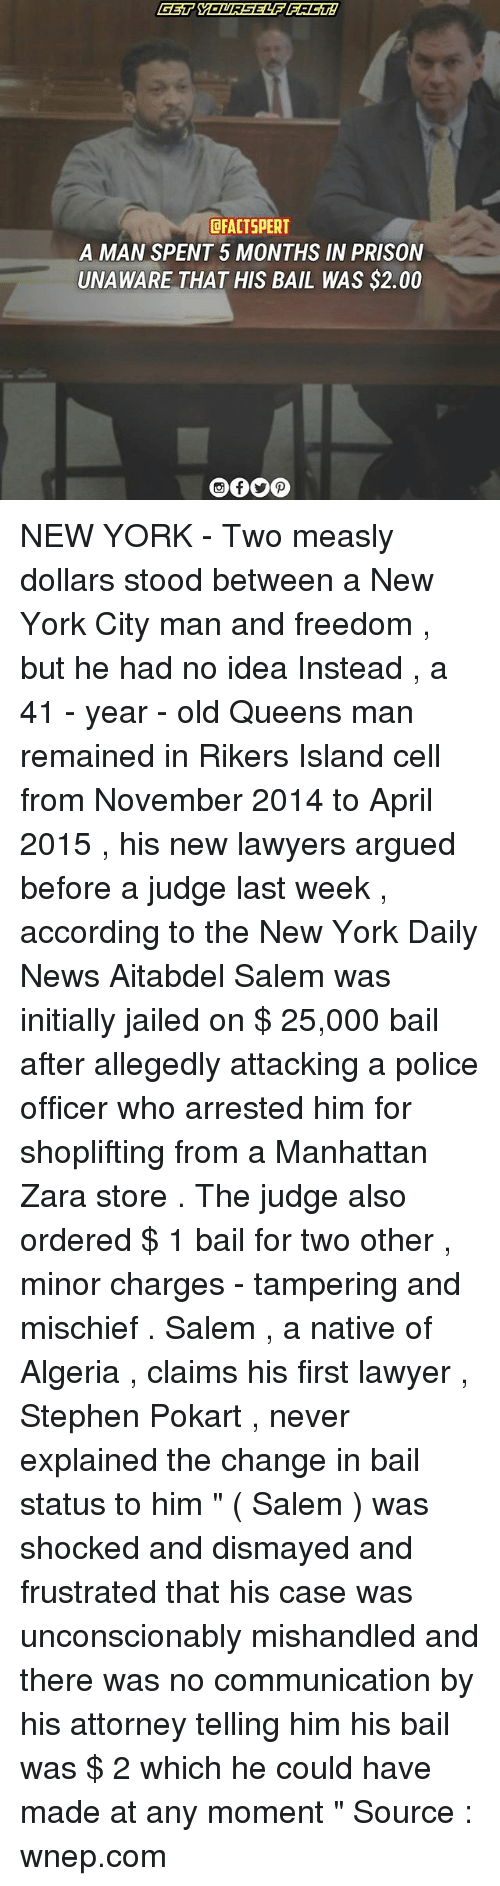 "Lawyer, Memes, and New York: DFACTSPERT  A MAN SPENT 5 MONTHS IN PRISON  UNAWARE THAT HIS BAIL WAS $2.00 NEW YORK - Two measly dollars stood between a New York City man and freedom , but he had no idea Instead , a 41 - year - old Queens man remained in Rikers Island cell from November 2014 to April 2015 , his new lawyers argued before a judge last week , according to the New York Daily News Aitabdel Salem was initially jailed on $ 25,000 bail after allegedly attacking a police officer who arrested him for shoplifting from a Manhattan Zara store . The judge also ordered $ 1 bail for two other , minor charges - tampering and mischief . Salem , a native of Algeria , claims his first lawyer , Stephen Pokart , never explained the change in bail status to him "" ( Salem ) was shocked and dismayed and frustrated that his case was unconscionably mishandled and there was no communication by his attorney telling him his bail was $ 2 which he could have made at any moment "" Source : wnep.com"